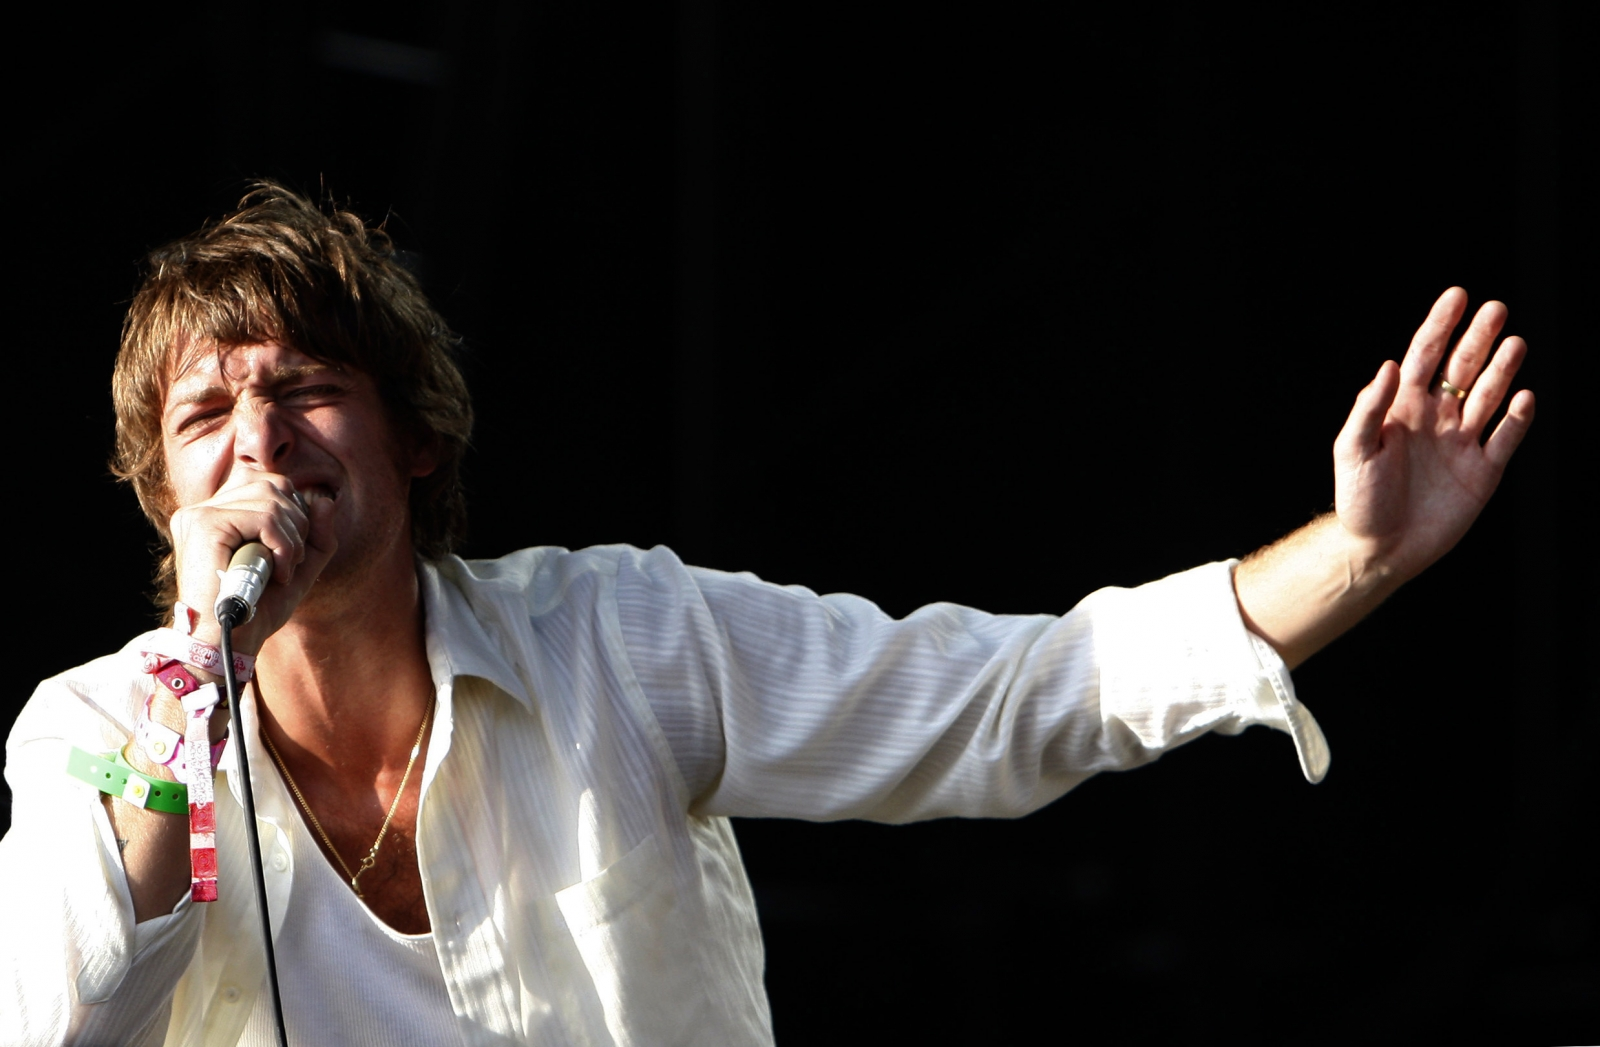 Paolo Nutini performing at Isle Of Wight